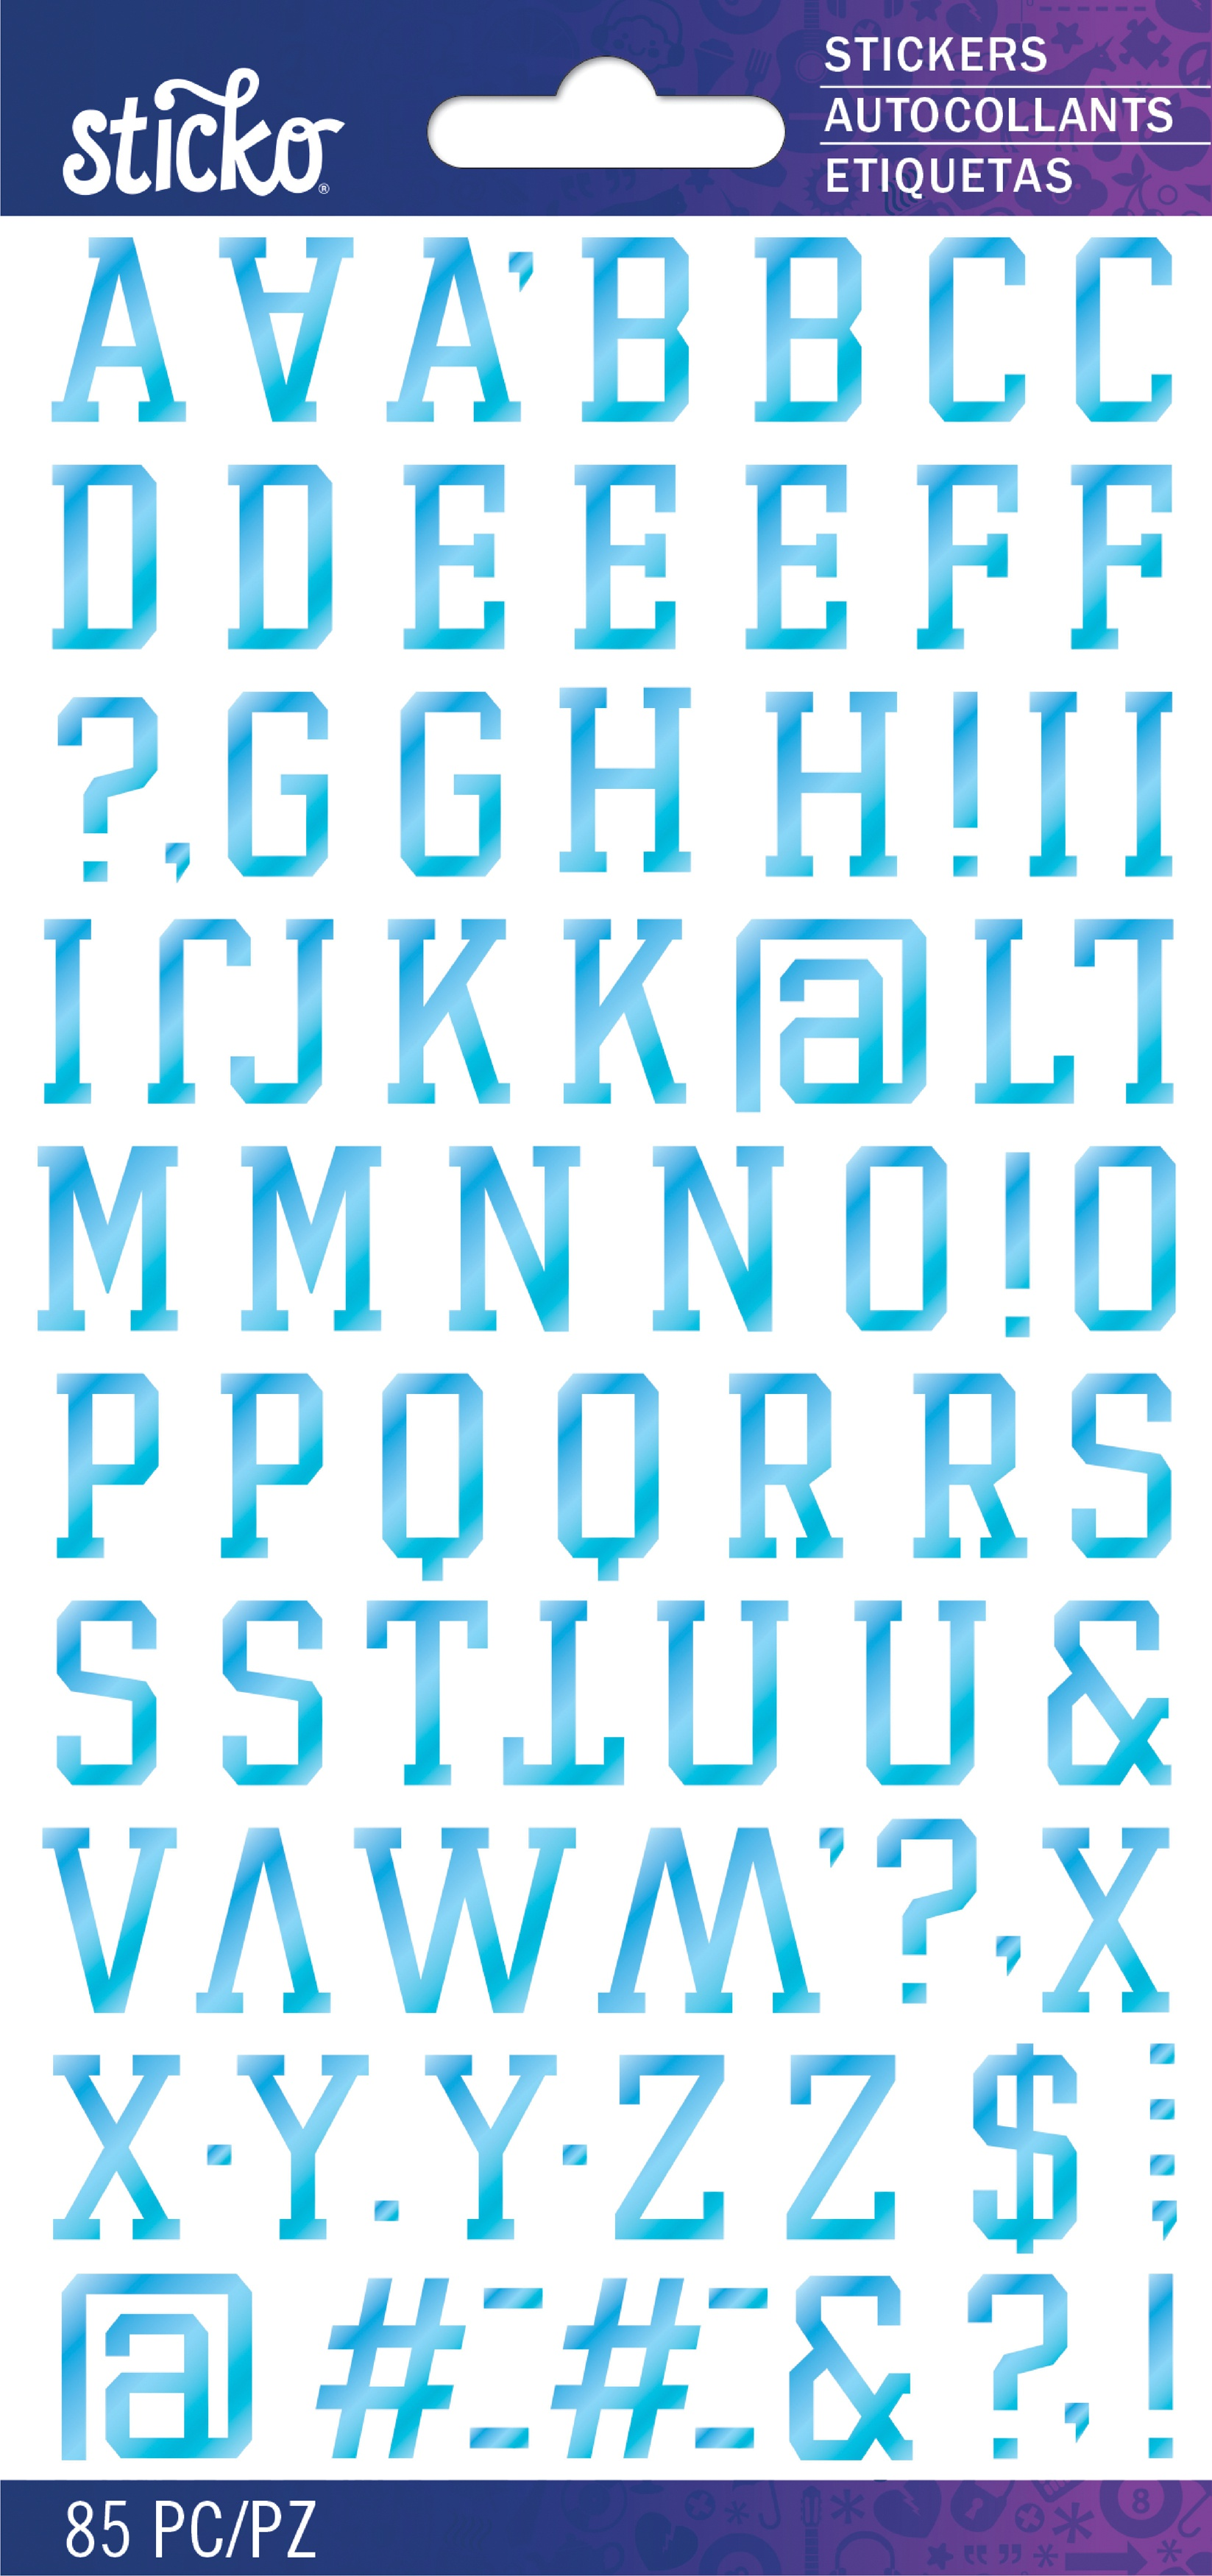 Sticko Iridescent Small Alphabet Stickers-Light Blue Player Pro